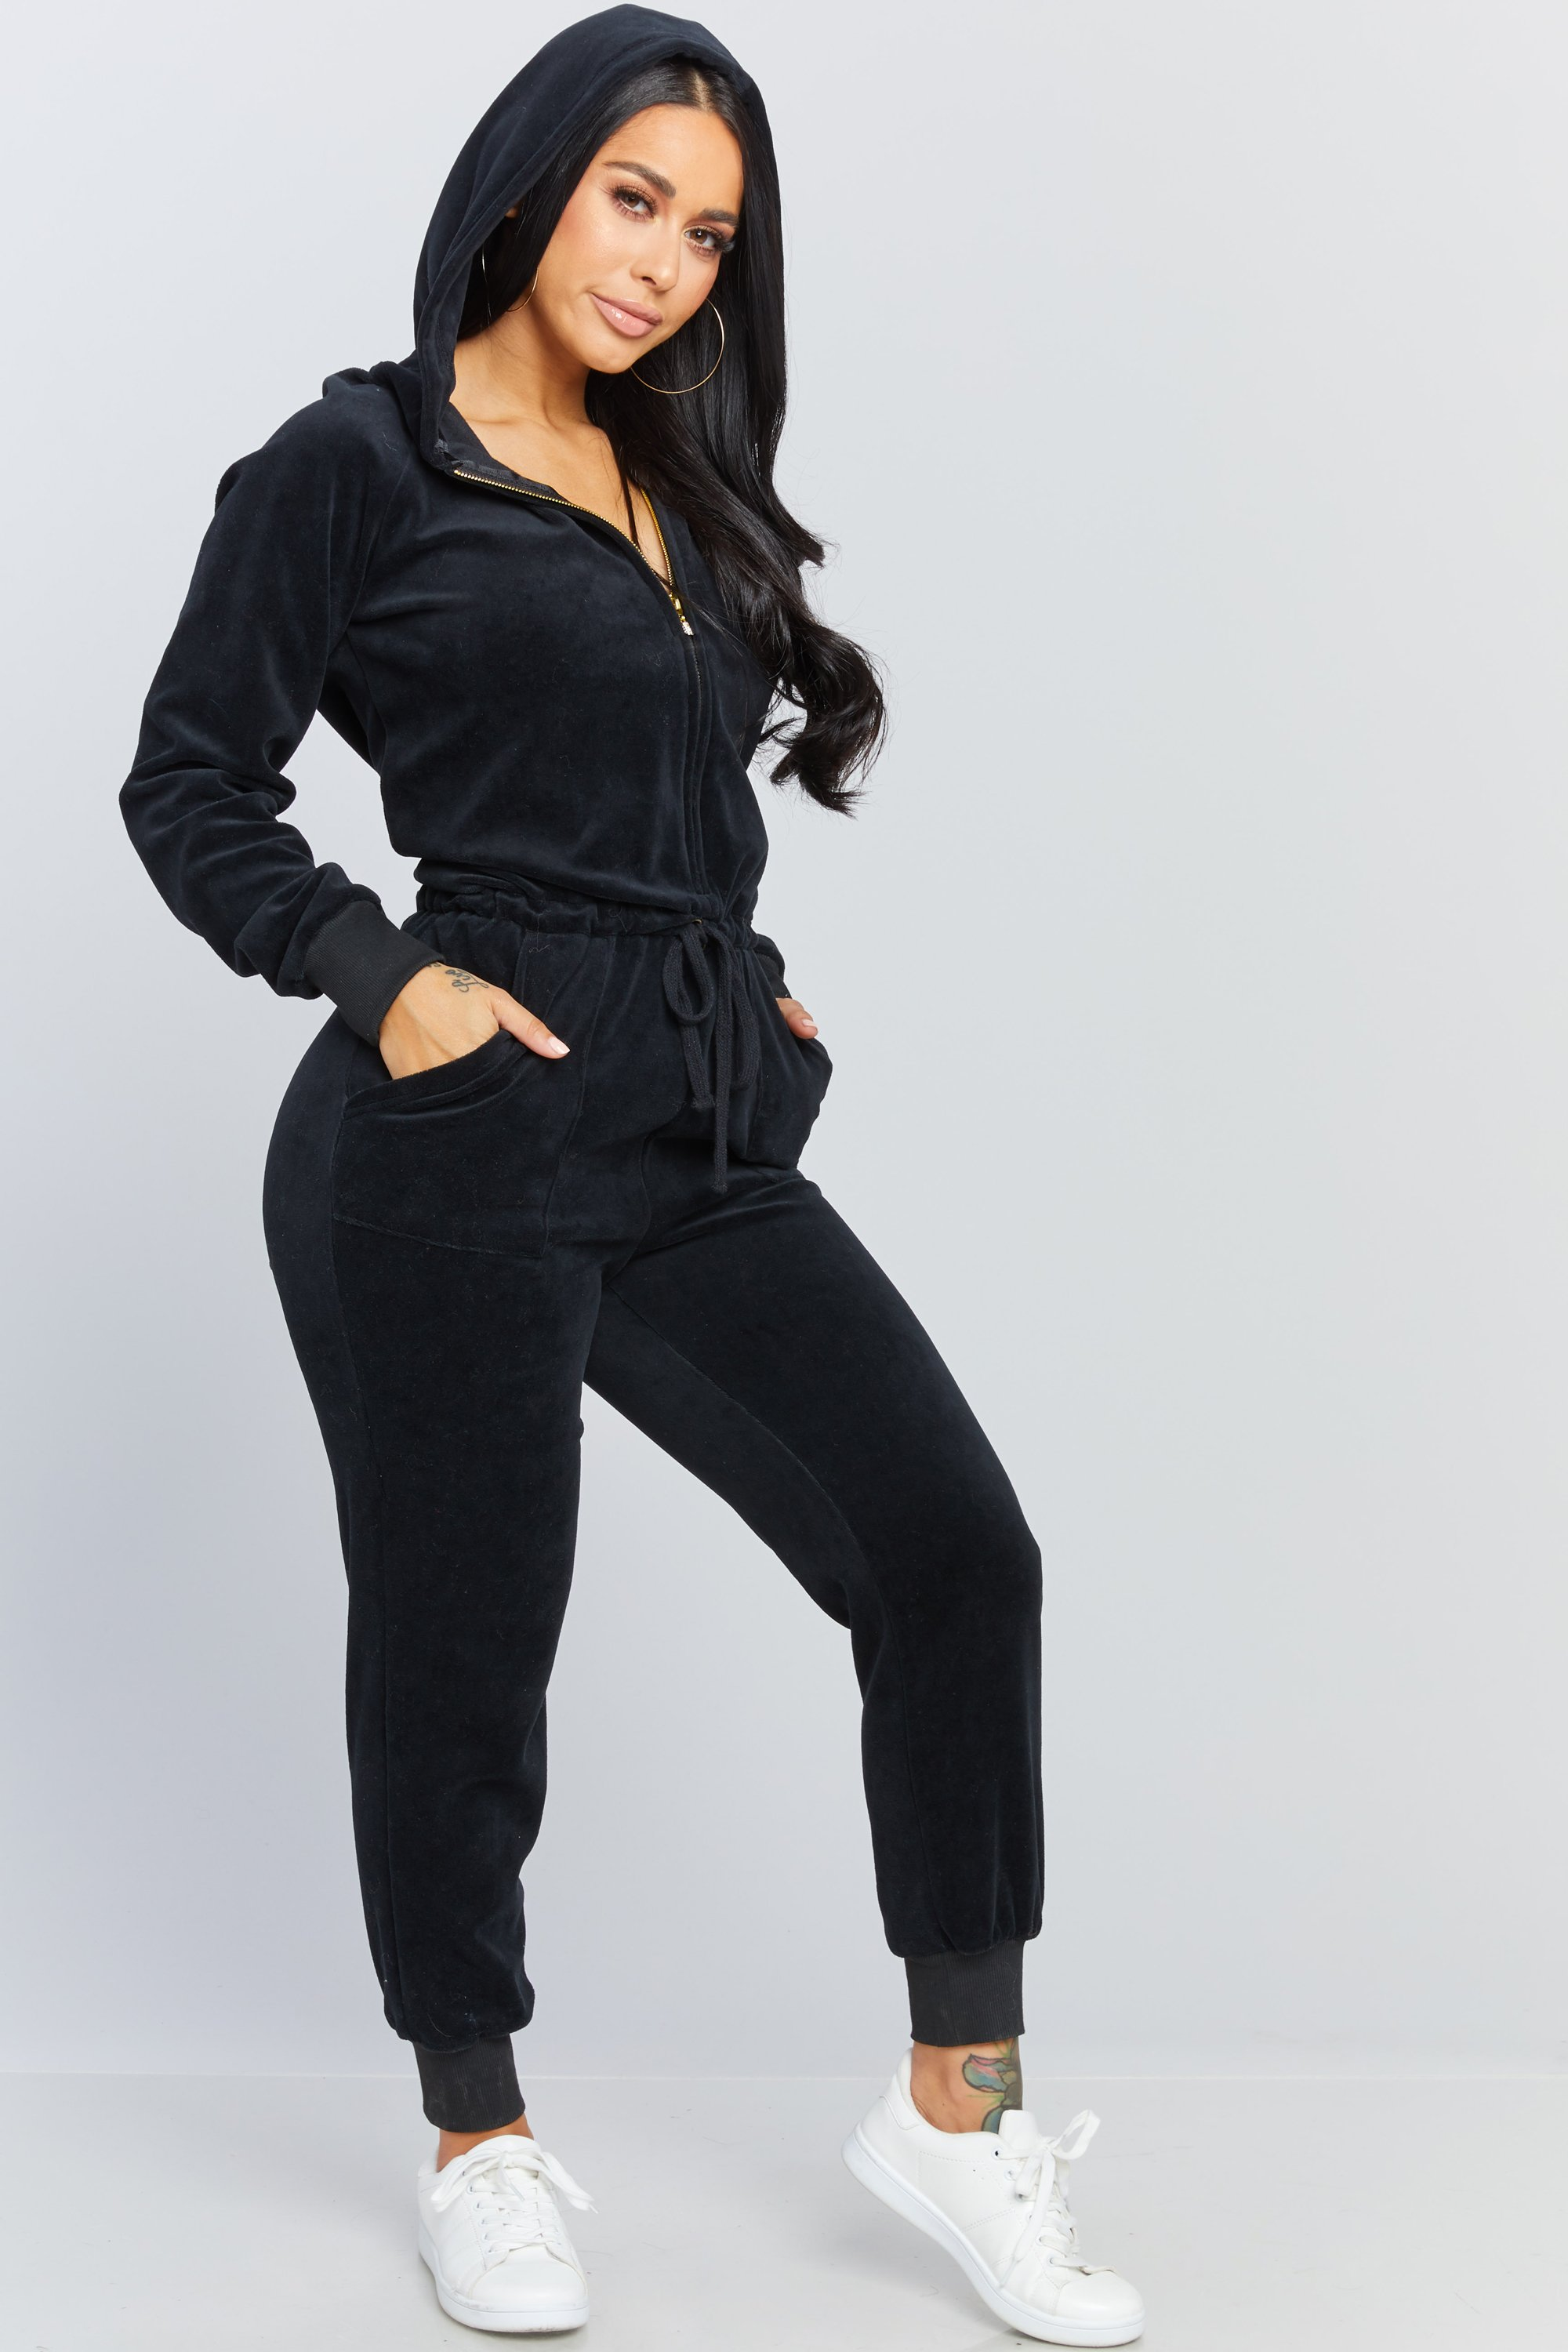 Honeybum Velour Jumpsuit Velour Jumpsuit Velour Outfits Clothes